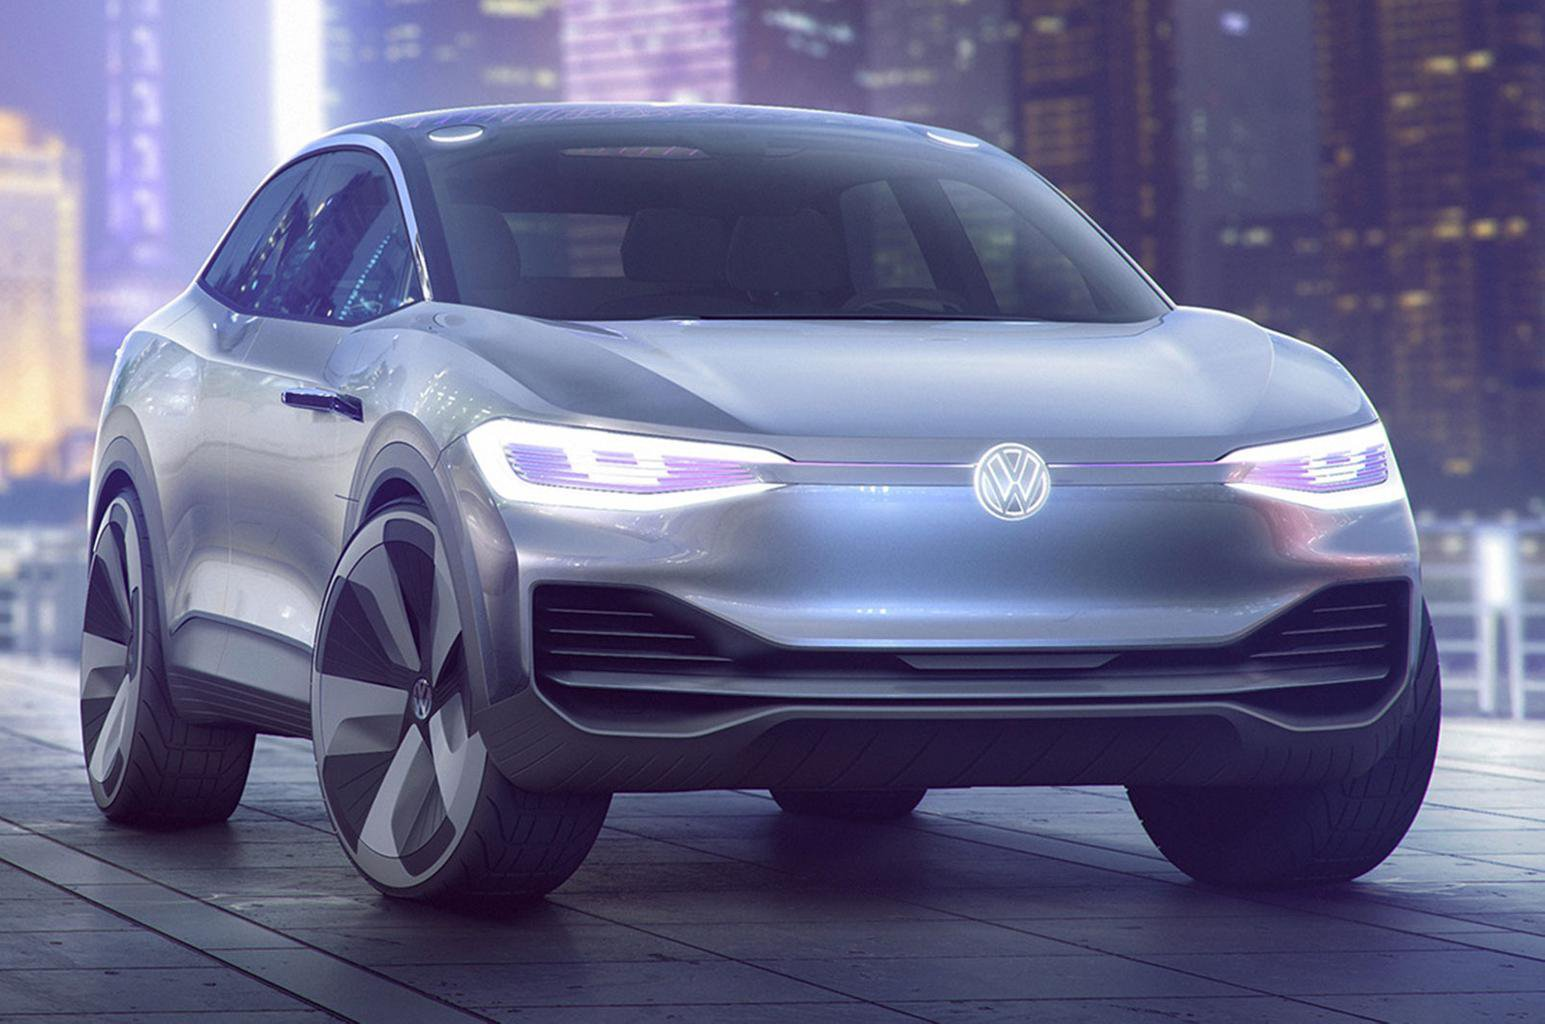 New Volkswagen ID Crozz concept previews electric SUV